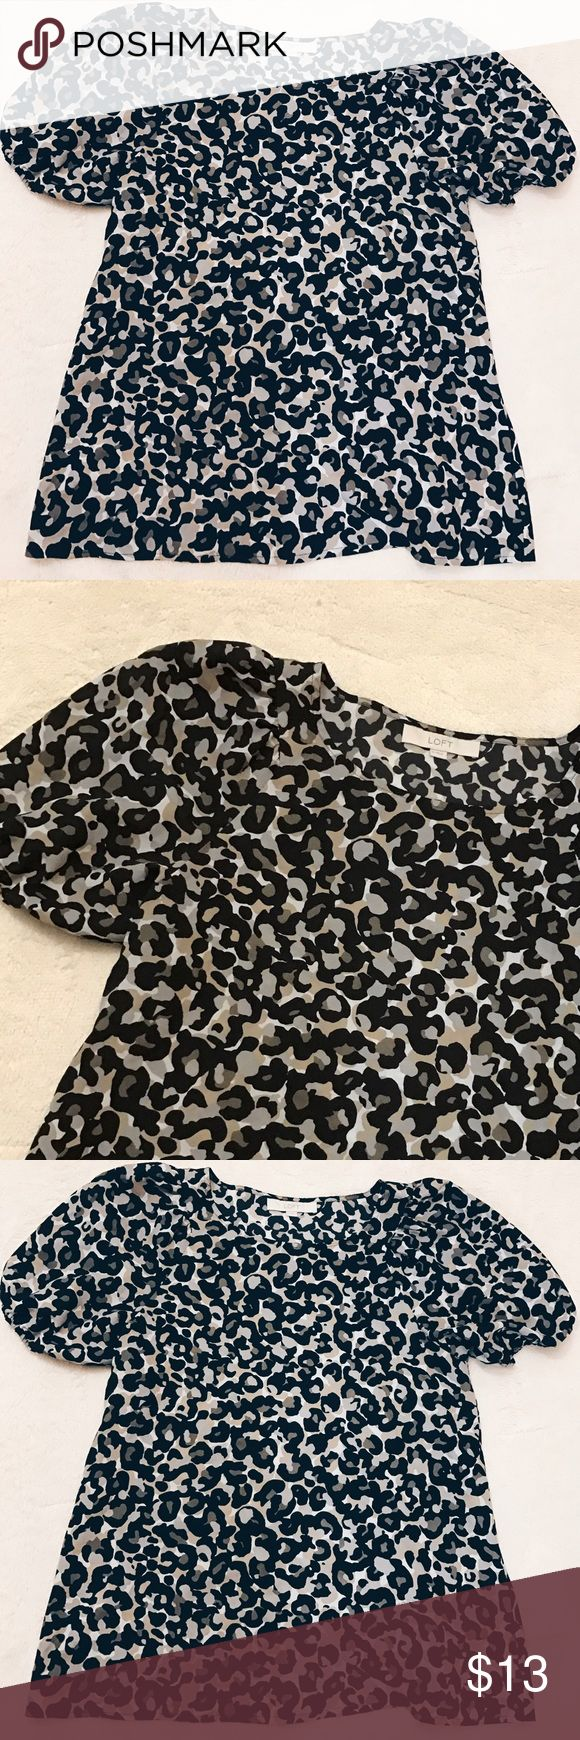 Cheetah print Loft dress shirt Really cute cheetah print shirt from the Loft. The sleeves are really cute! In pretty good condition. LOFT Tops